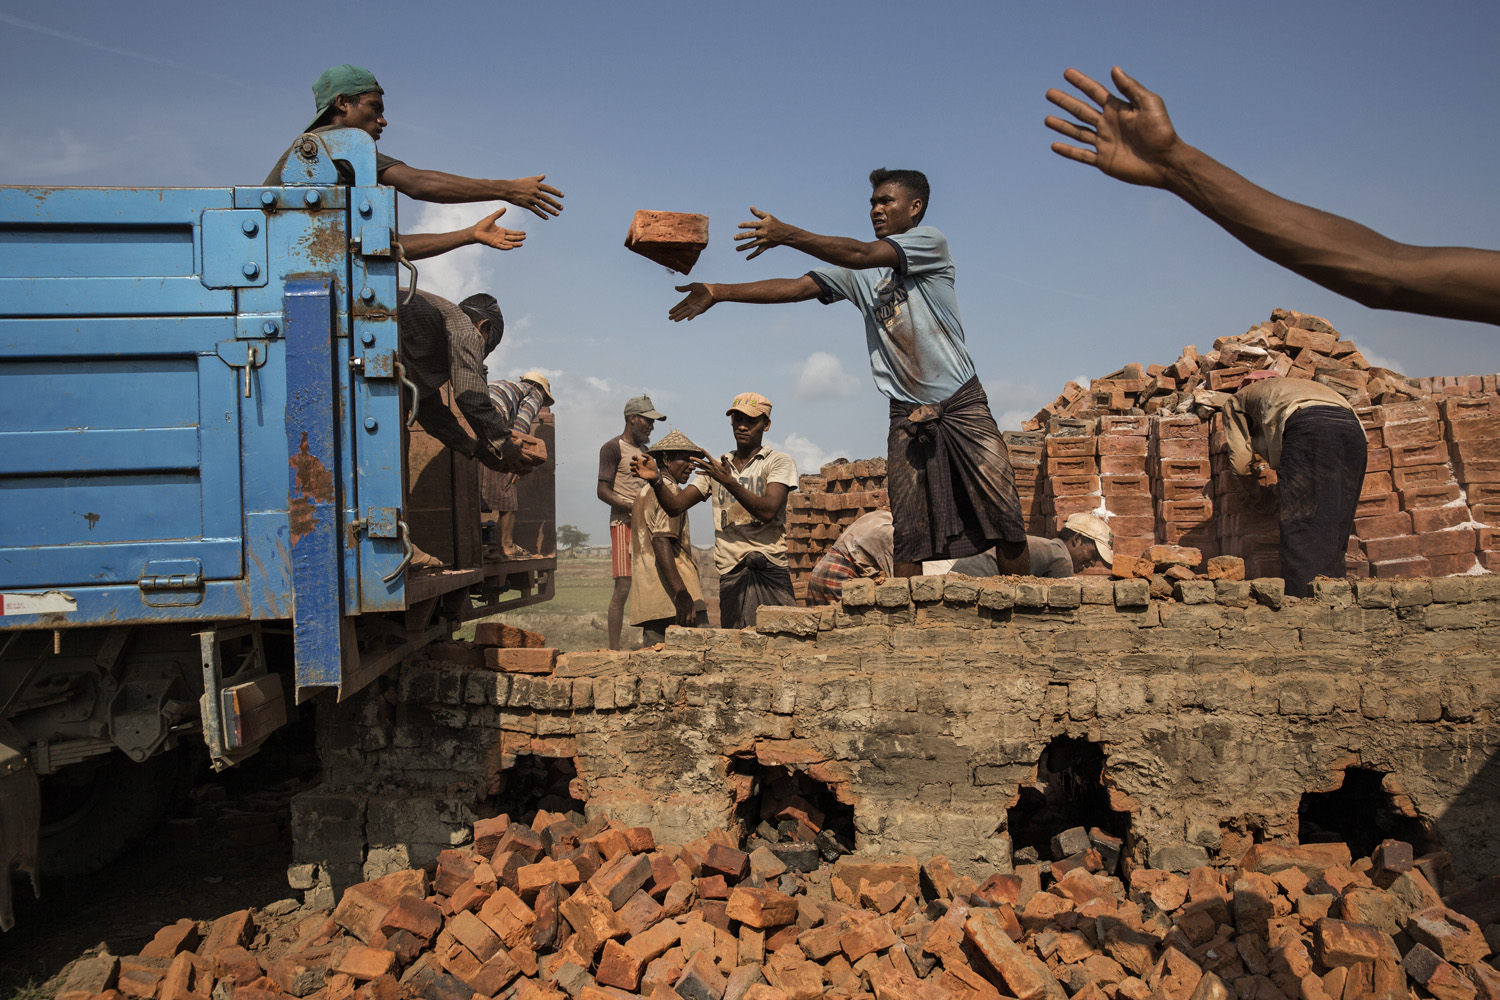 Internees in one camp operate brick kilns to earn money. Adults are paid about $2 a day; children, half that amount.